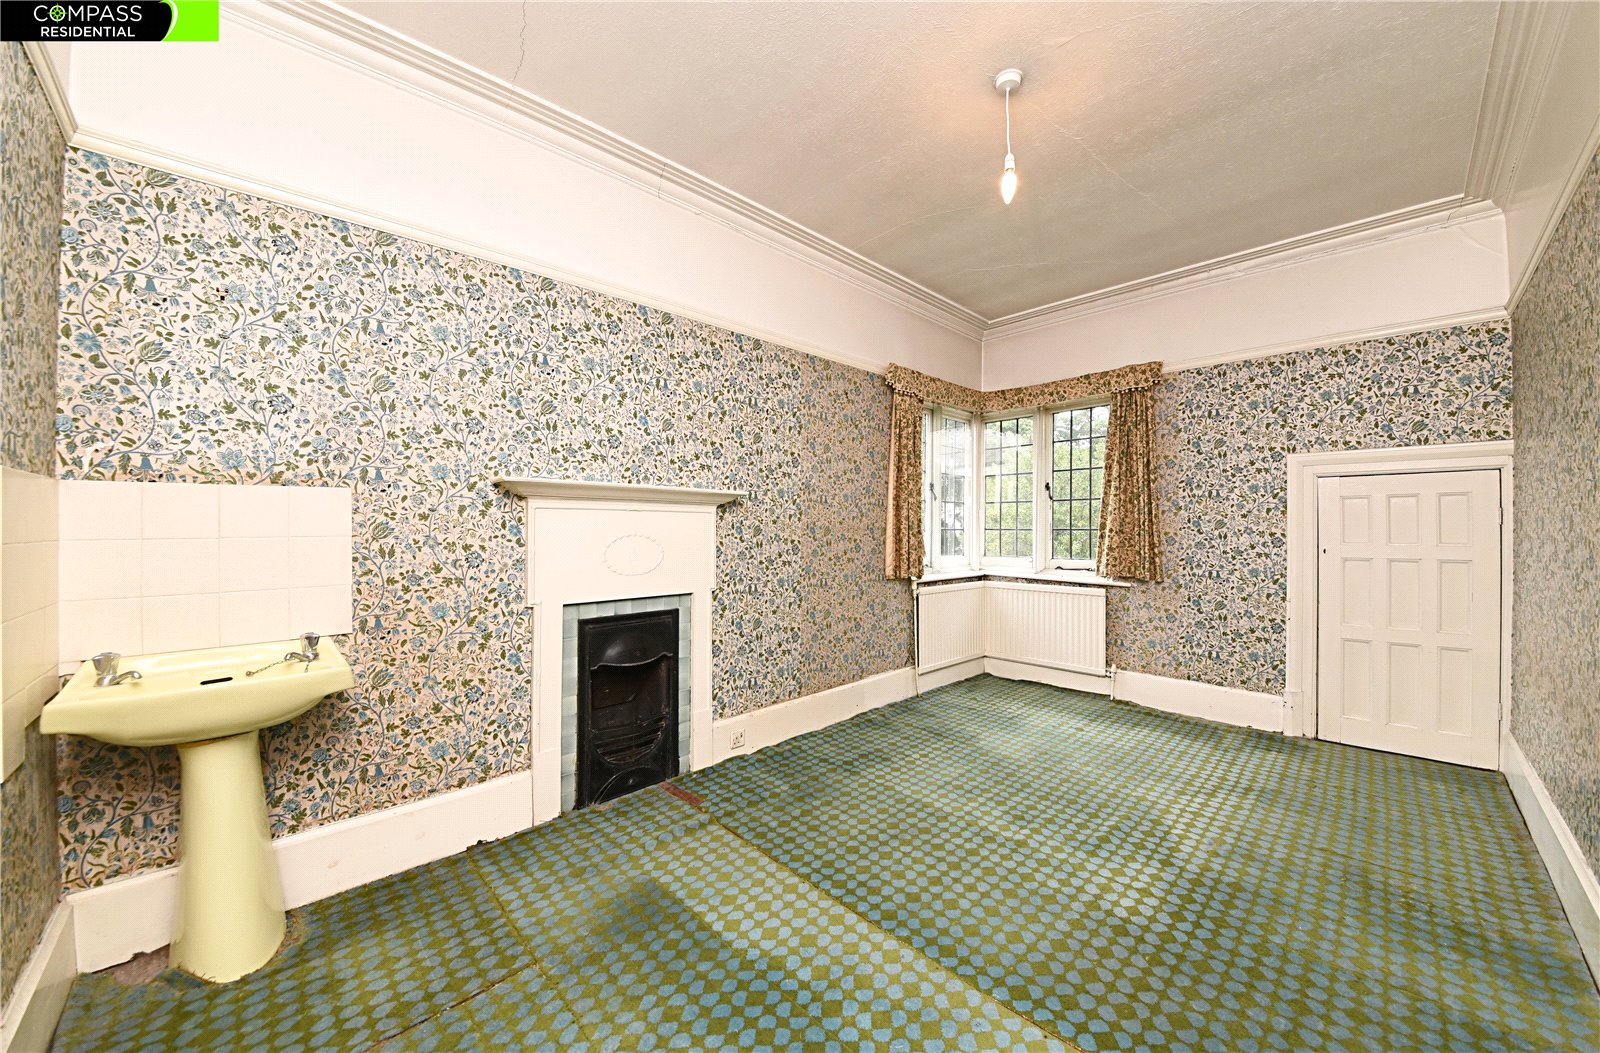 6 bed house for sale in Whetstone, N20 0NN  - Property Image 10